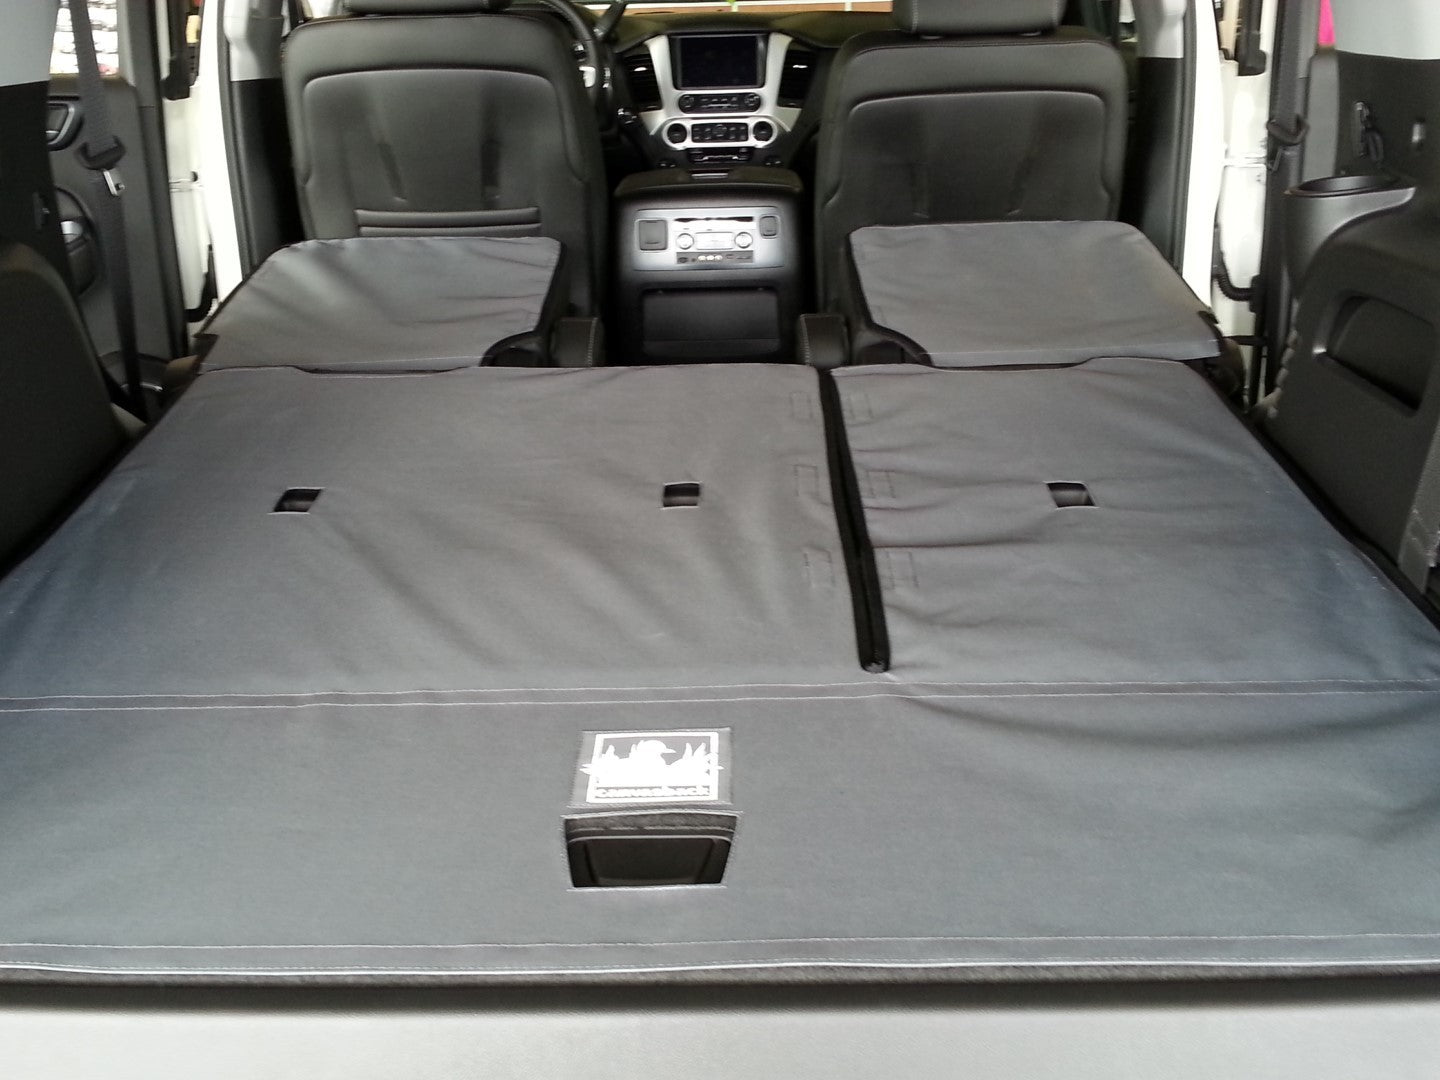 Chevrolet Tahoe Canvasback Interior Cargo Liners 2015-2019  FREE SHIPPING